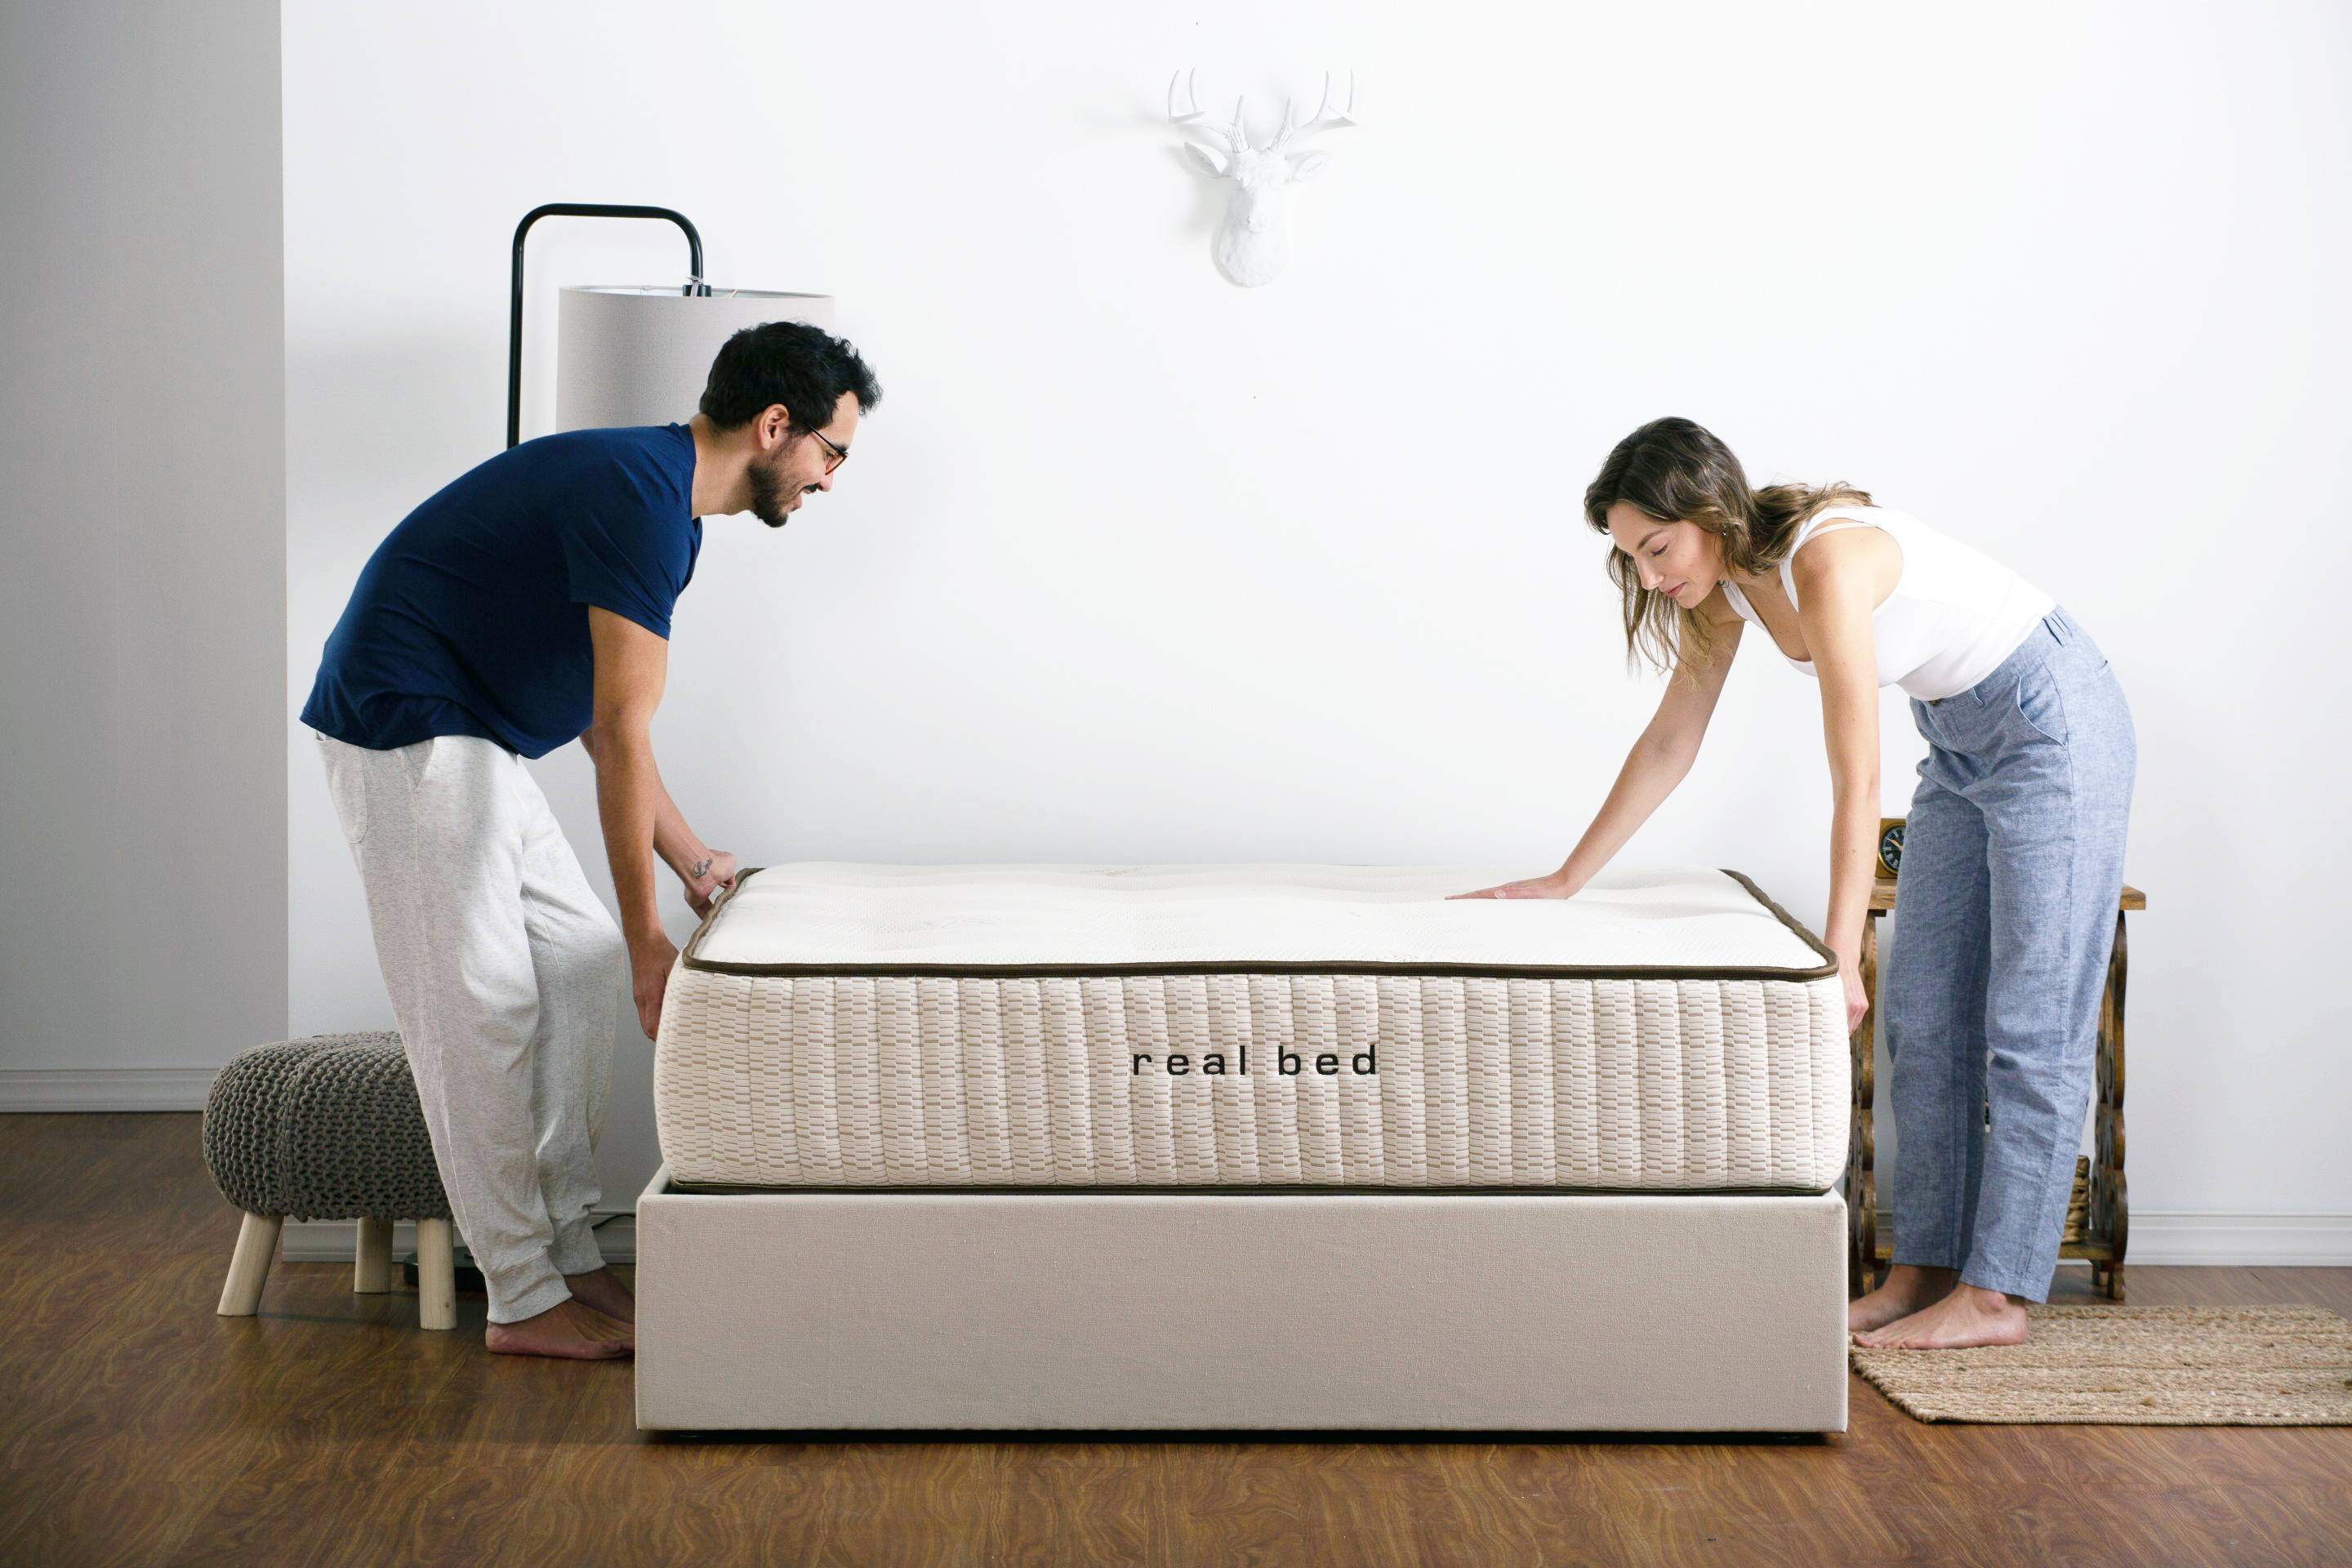 Man and woman making a bed in stylish white bedroom. Image